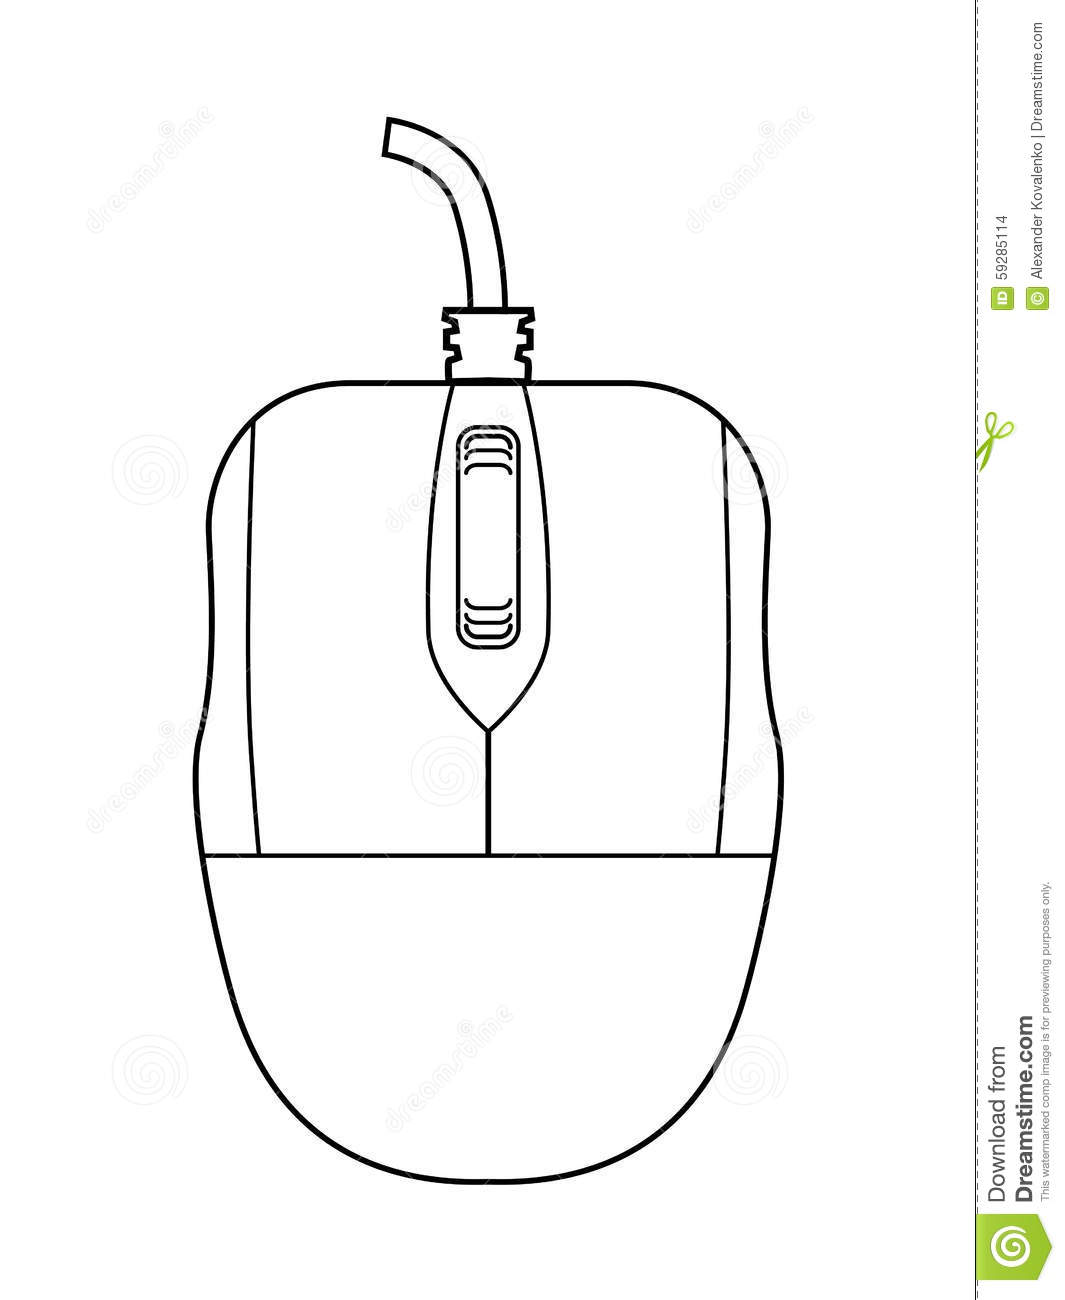 Computer Mouse Outline computer mouse stock illustration - image ...